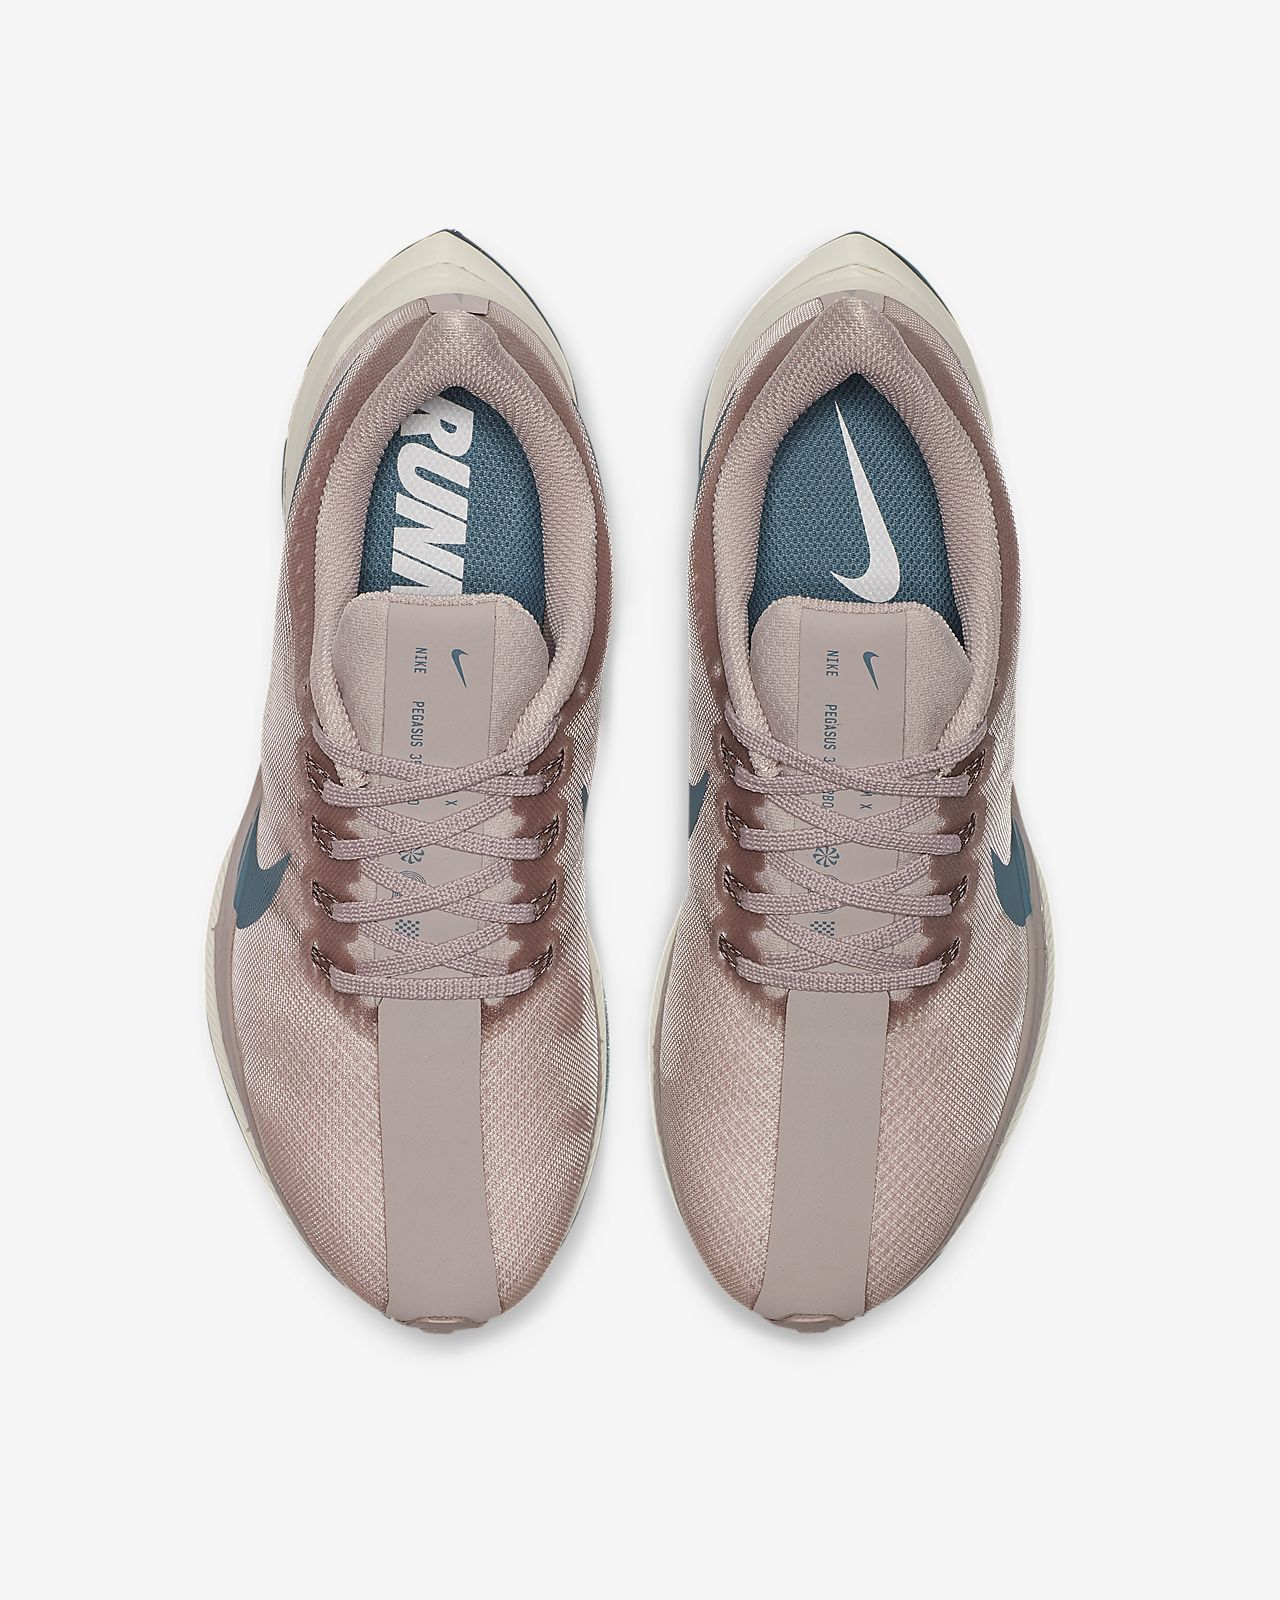 Air Zoom Structure 22 Sneaker In Rose Pale Pink smokey Mauve